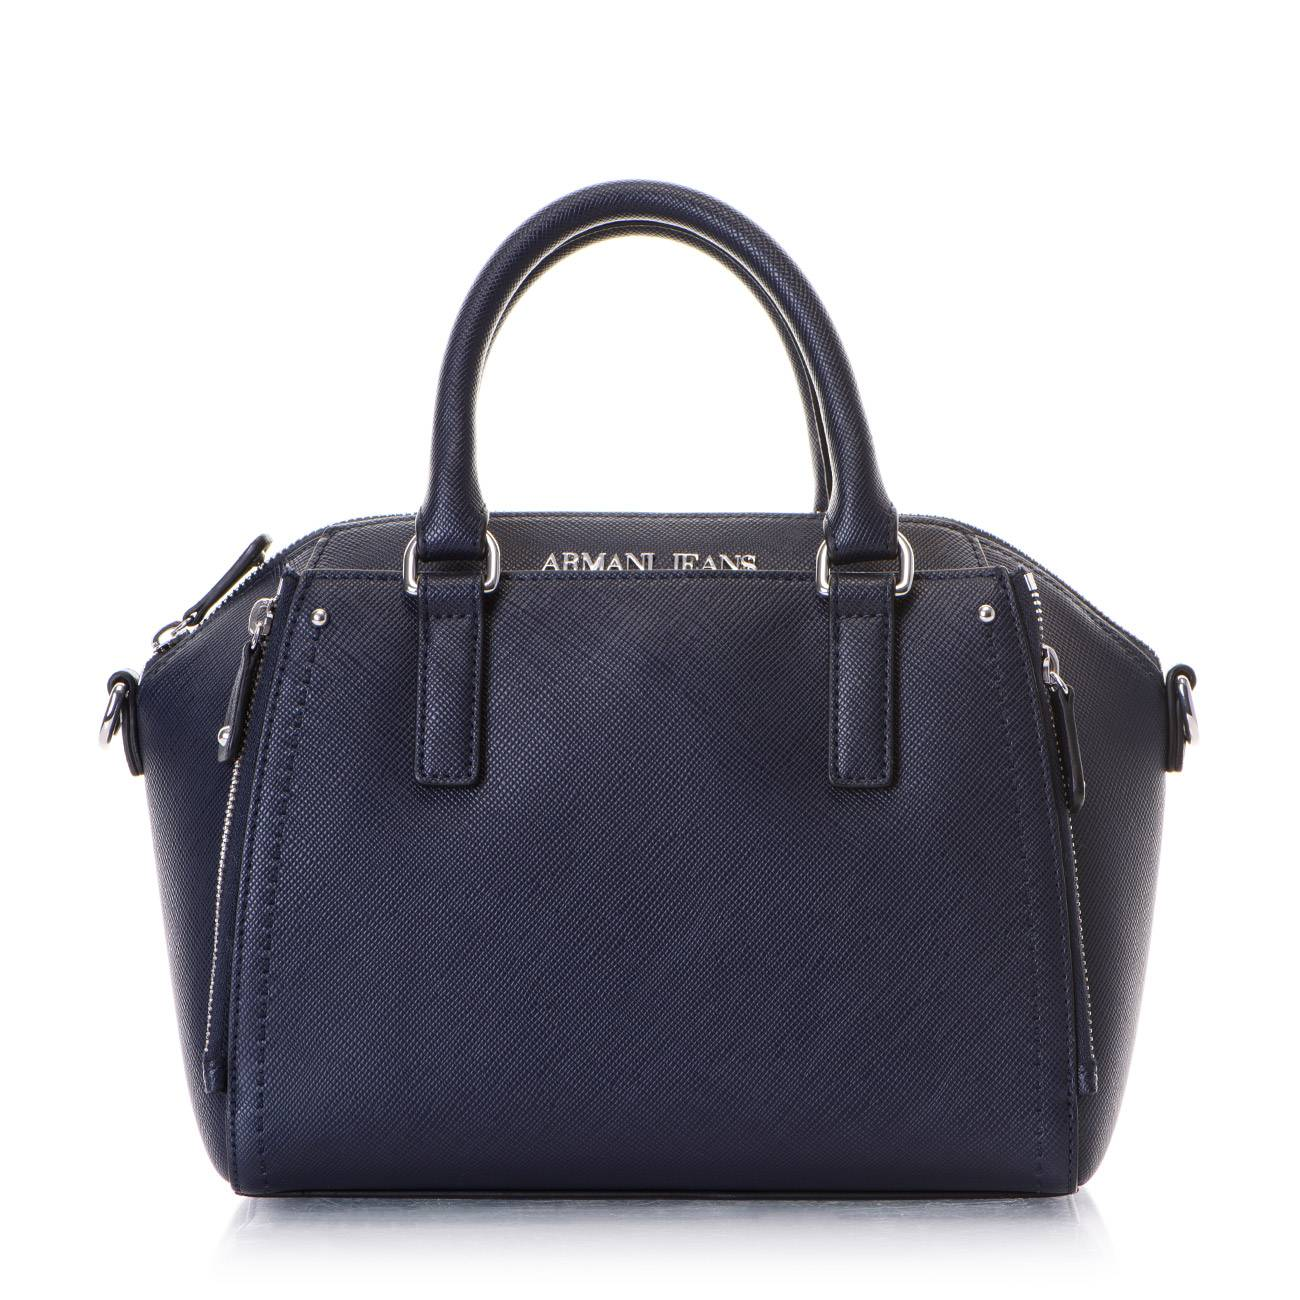 DARK NAVY BOSTON BAG